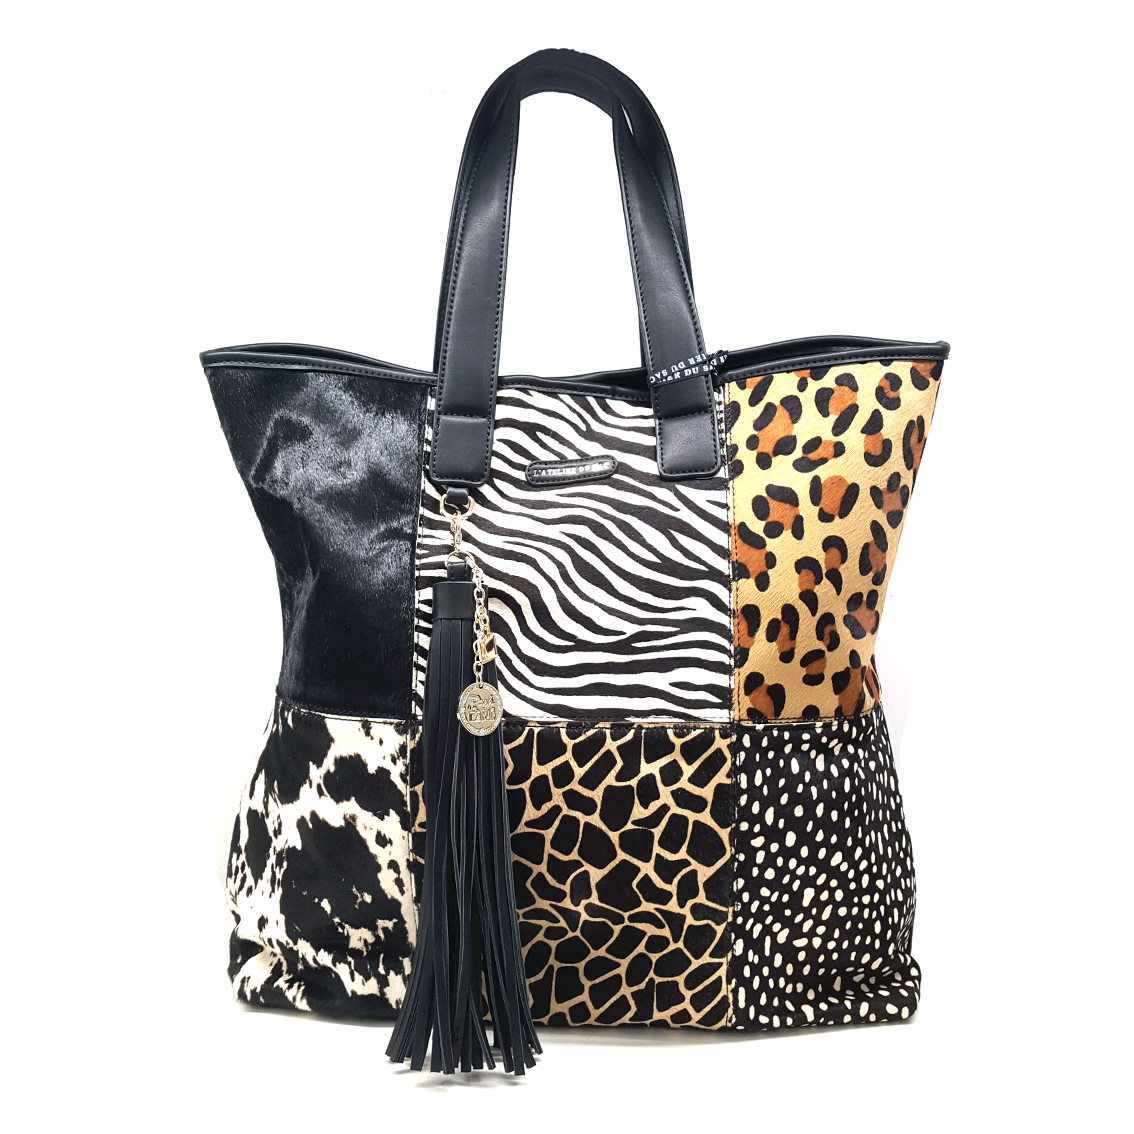 Borsa a mano multipatch animalier PashBag